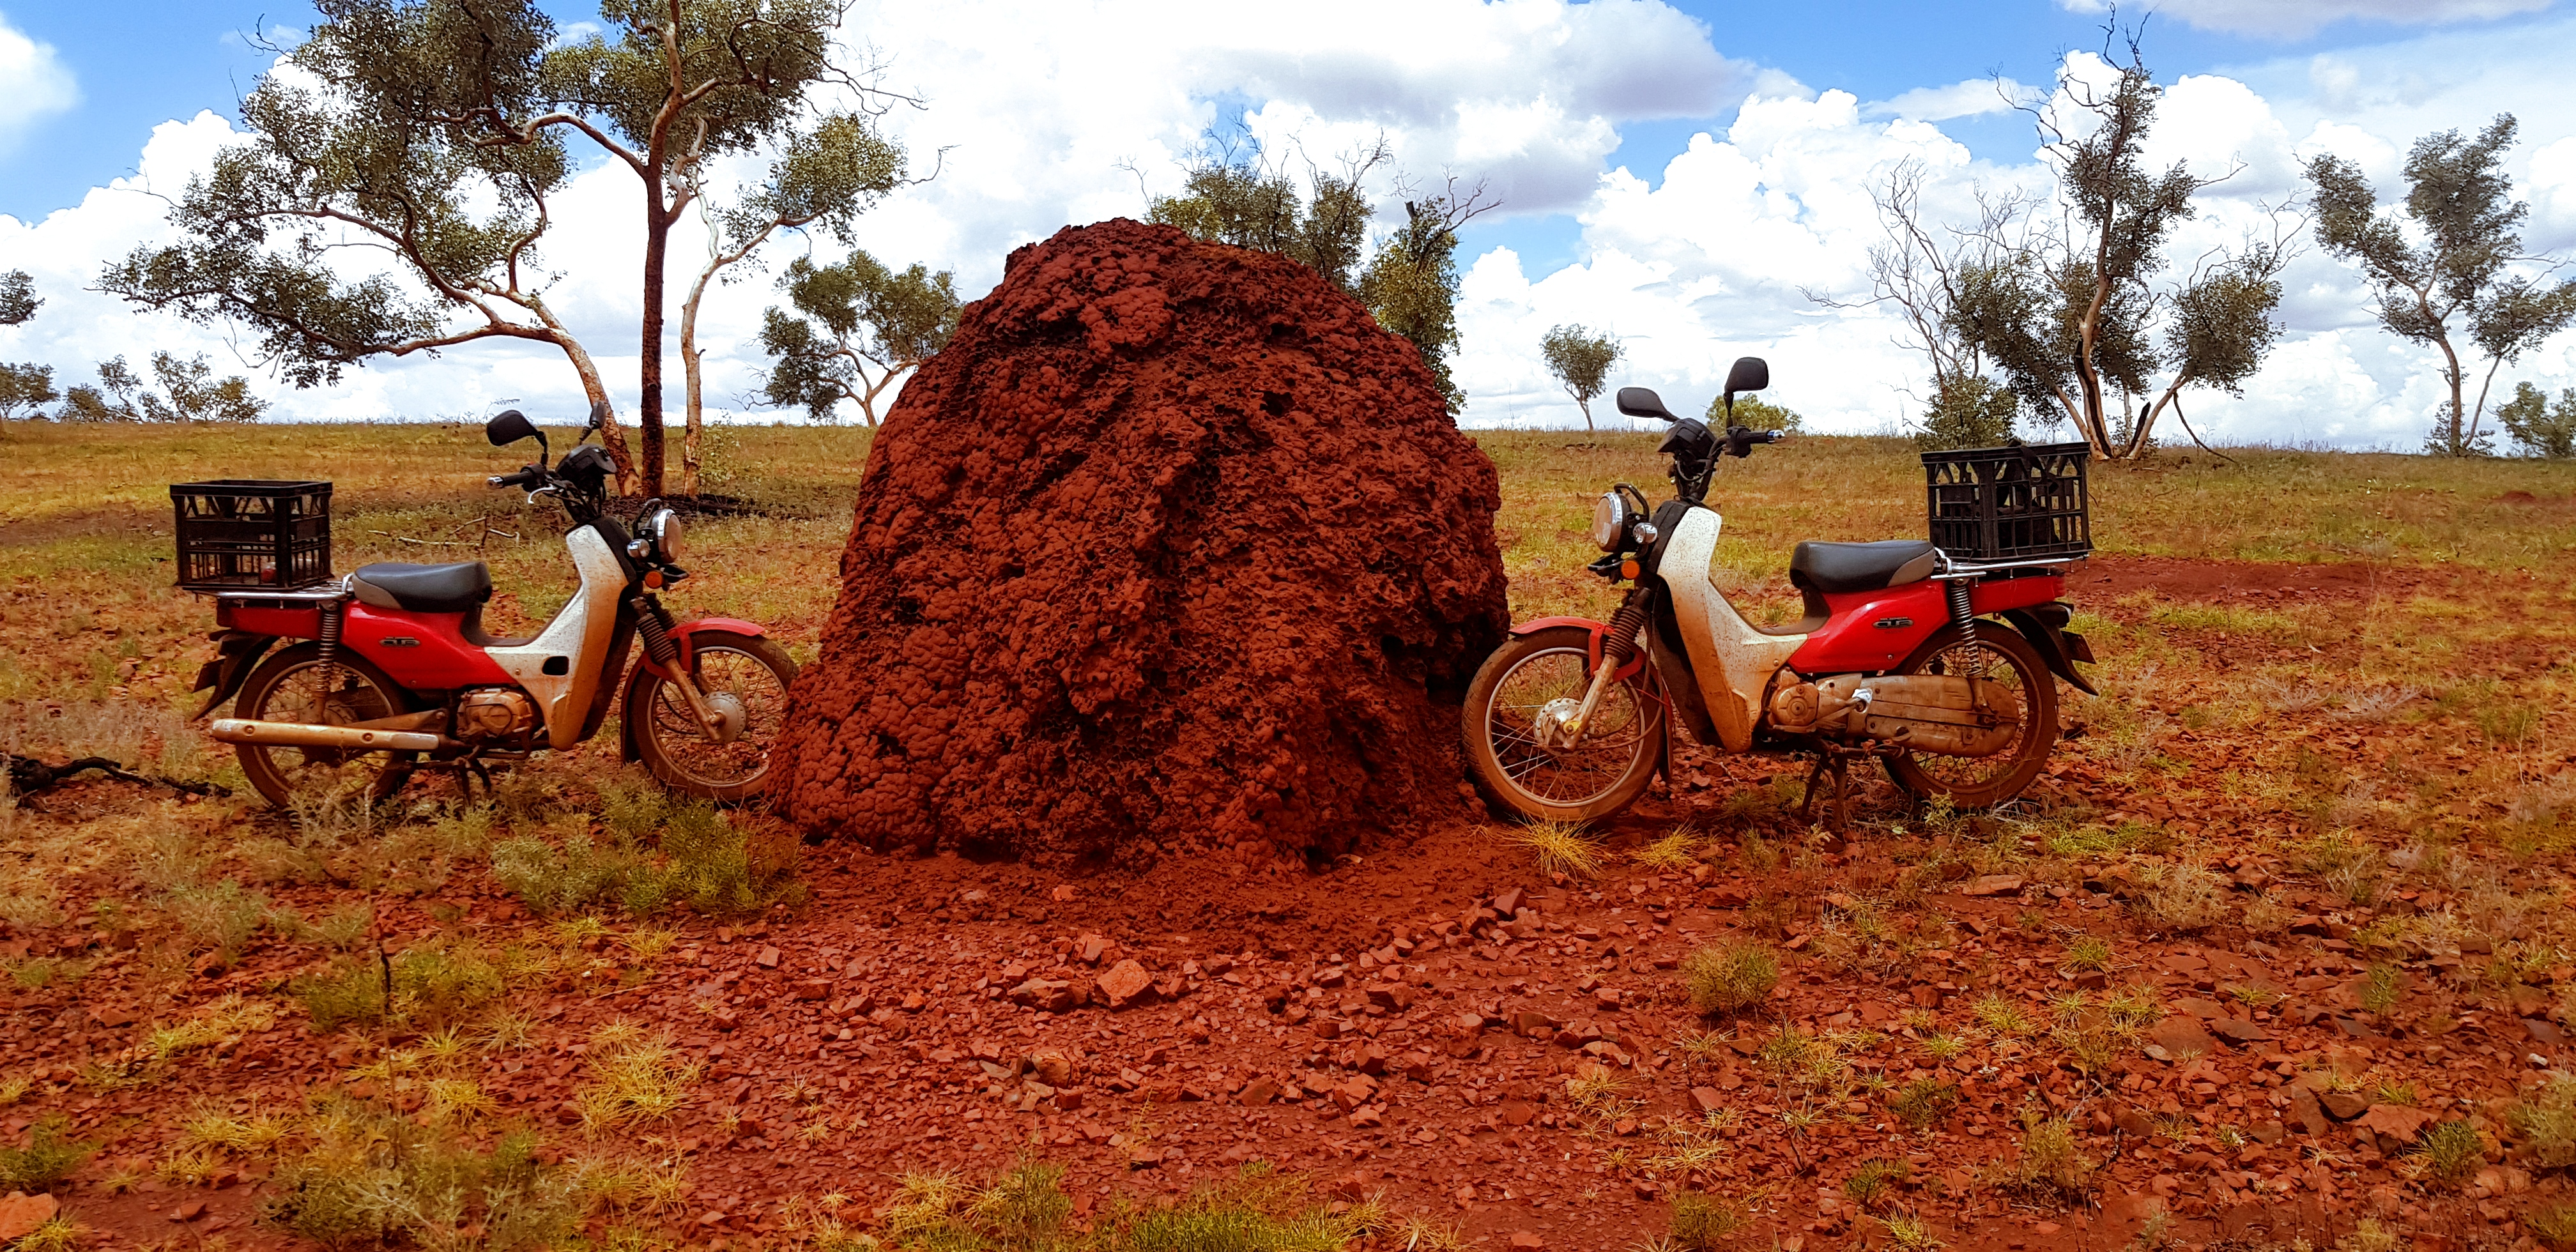 Termite mound vs Honda Cub NBC110